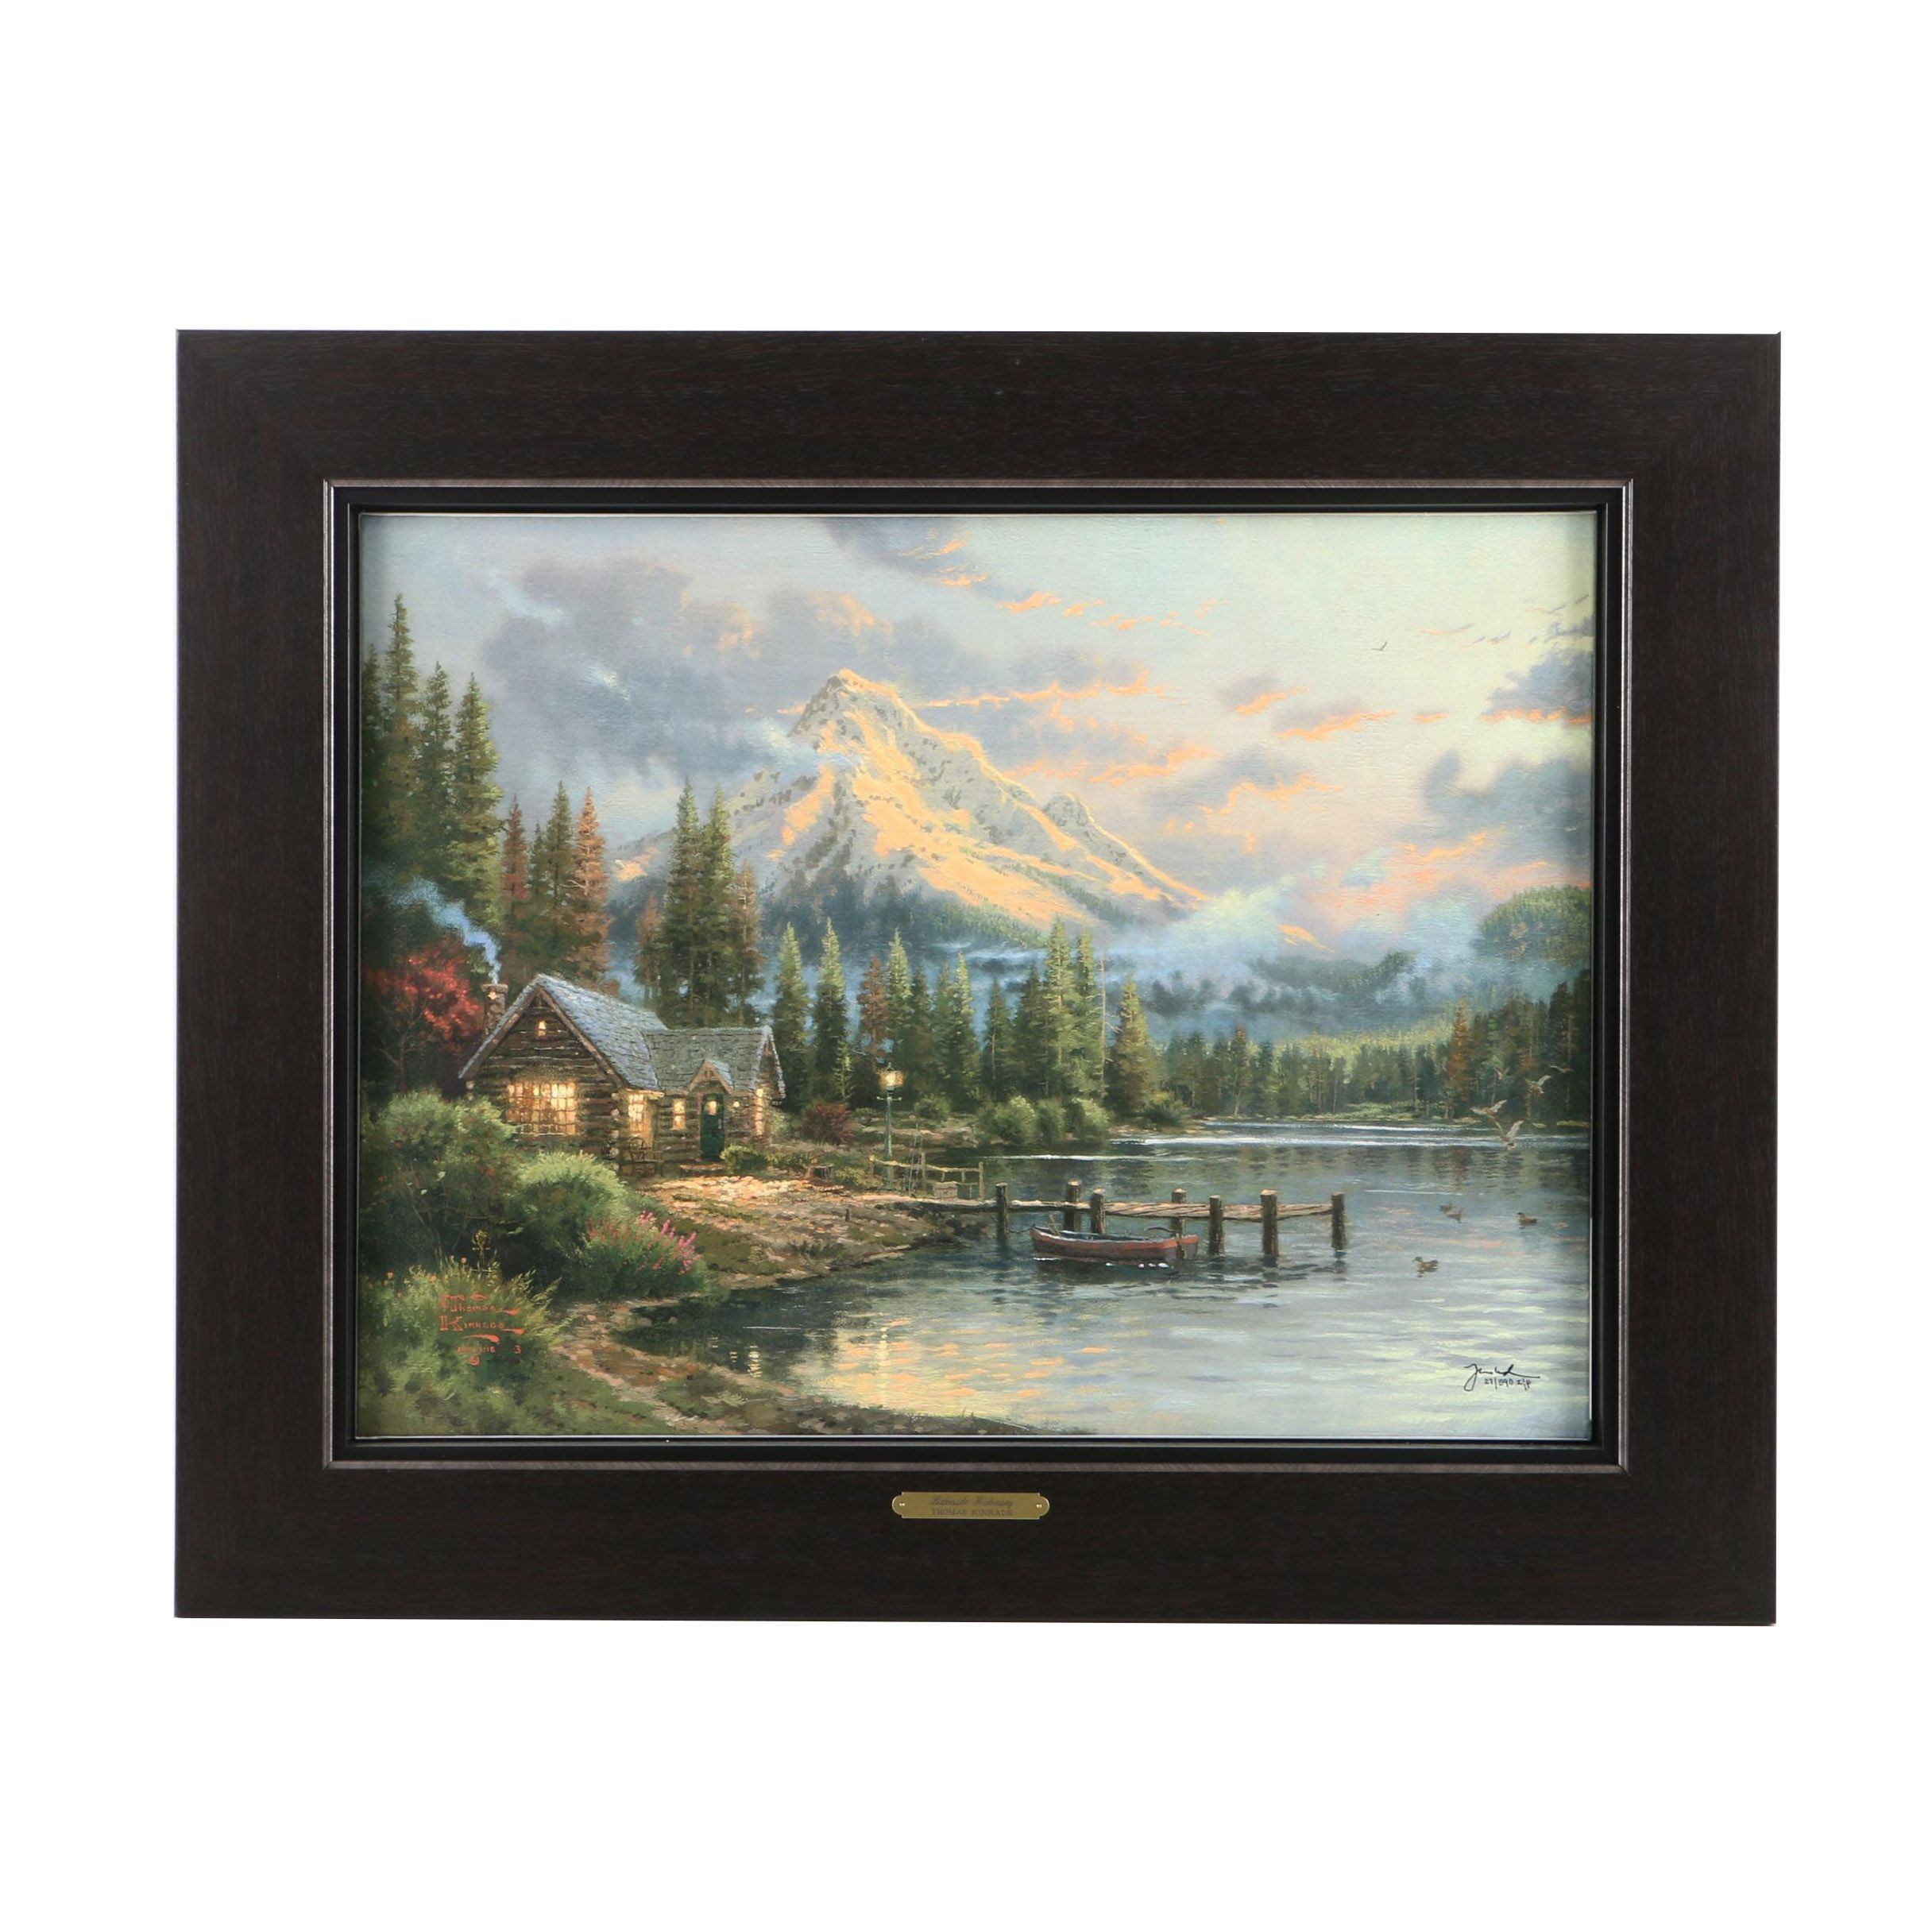 """Thomas Kinkade Limited Edition Offset Lithograph on Canvas """"Lakeside Hideaway"""""""